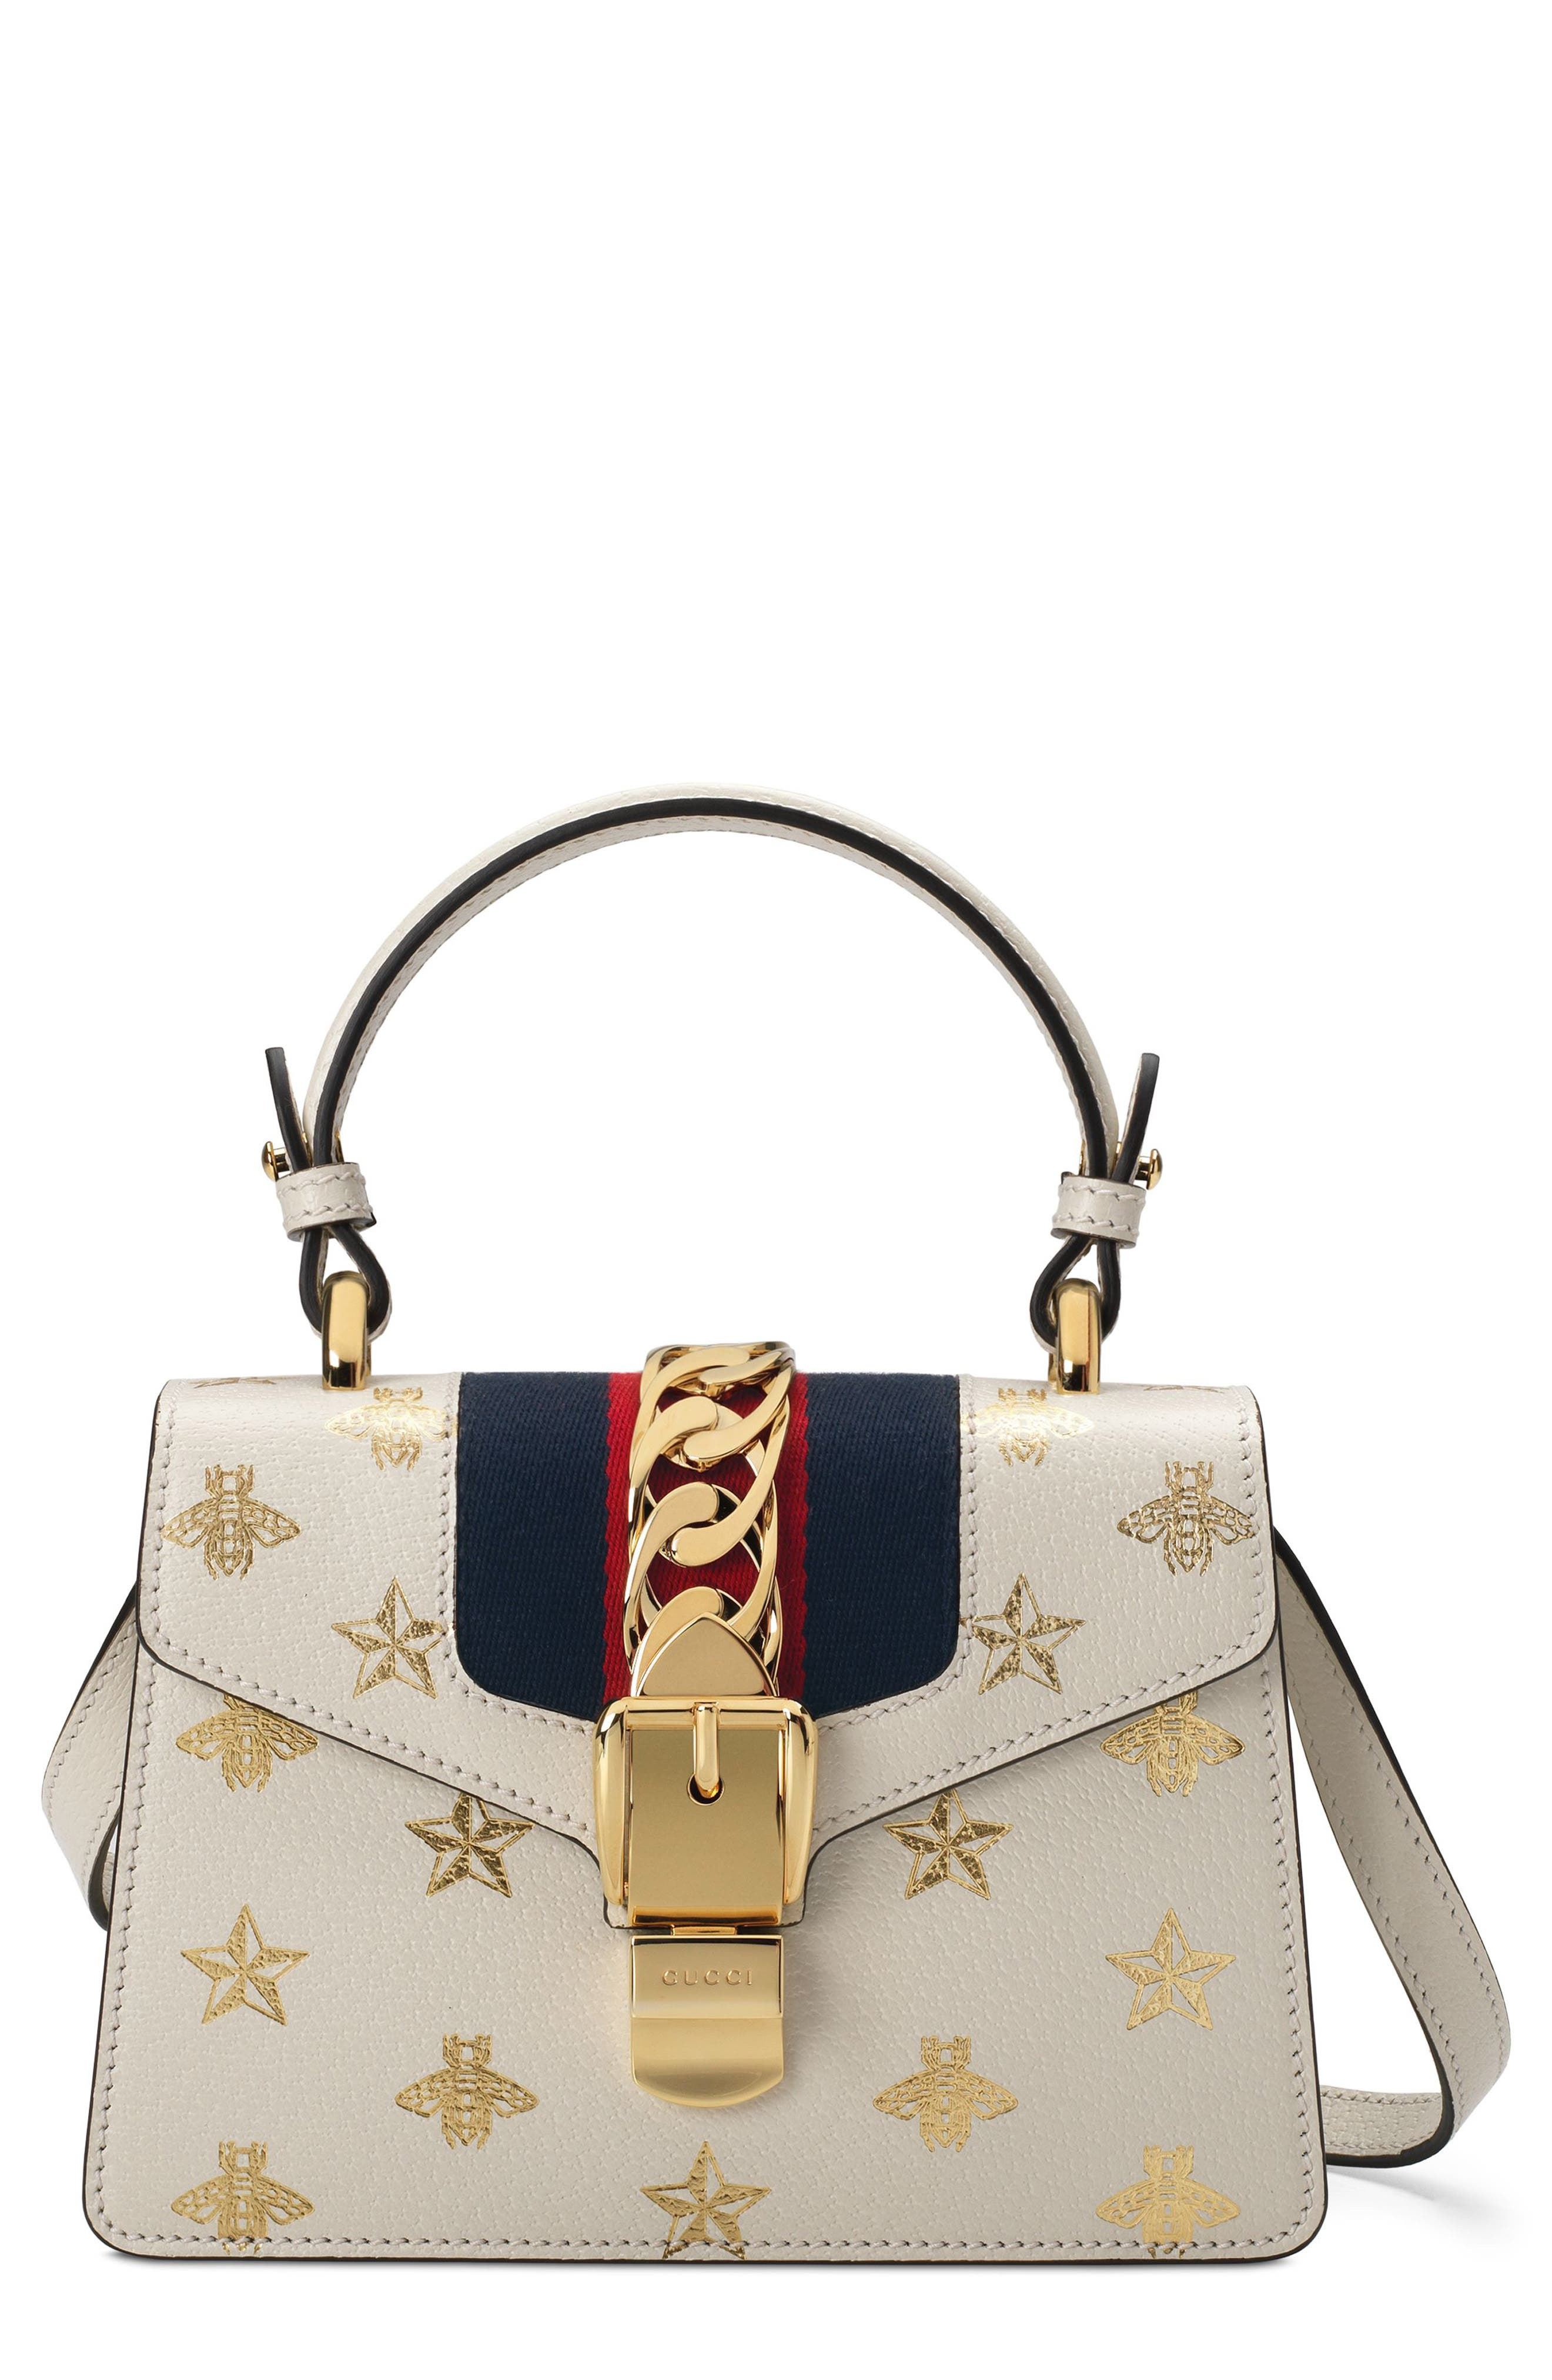 Small Sylvie Top Handle Leather Shoulder Bag,                         Main,                         color, MYSTIC WHITE/ ORO/ BLUE/ RED